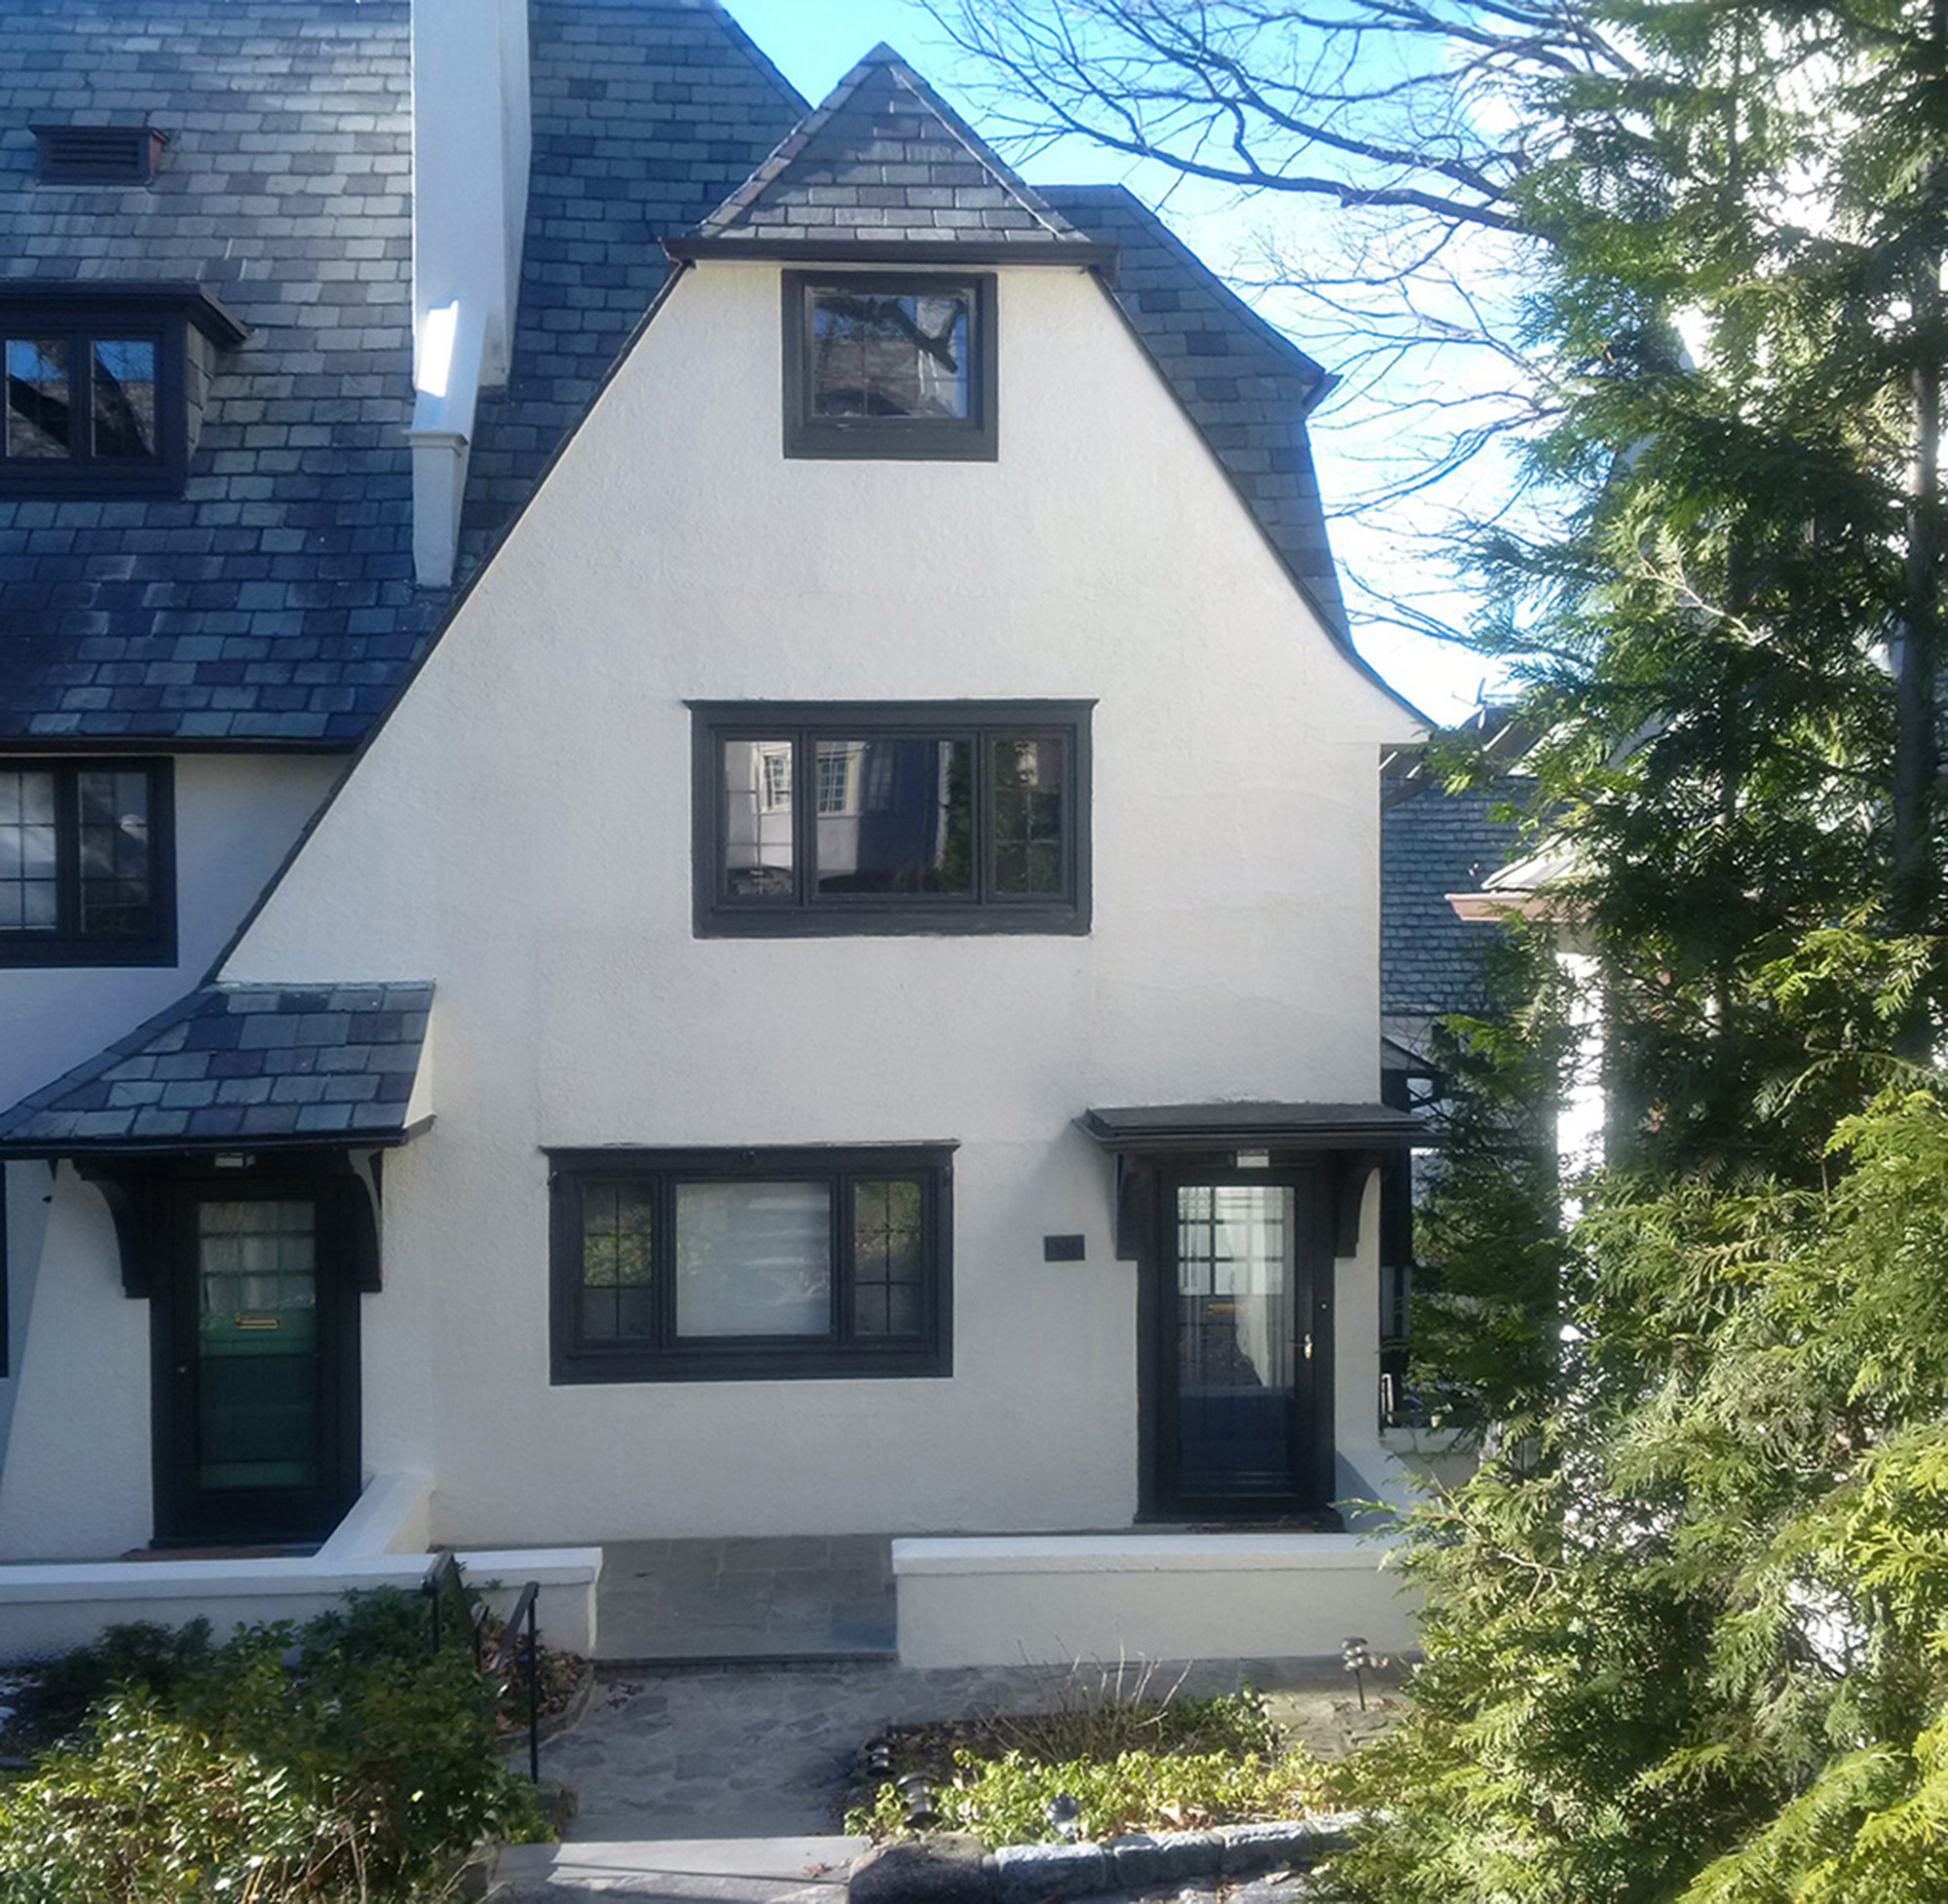 Property For Sale at Totally Renovated Sagamore Townhouse